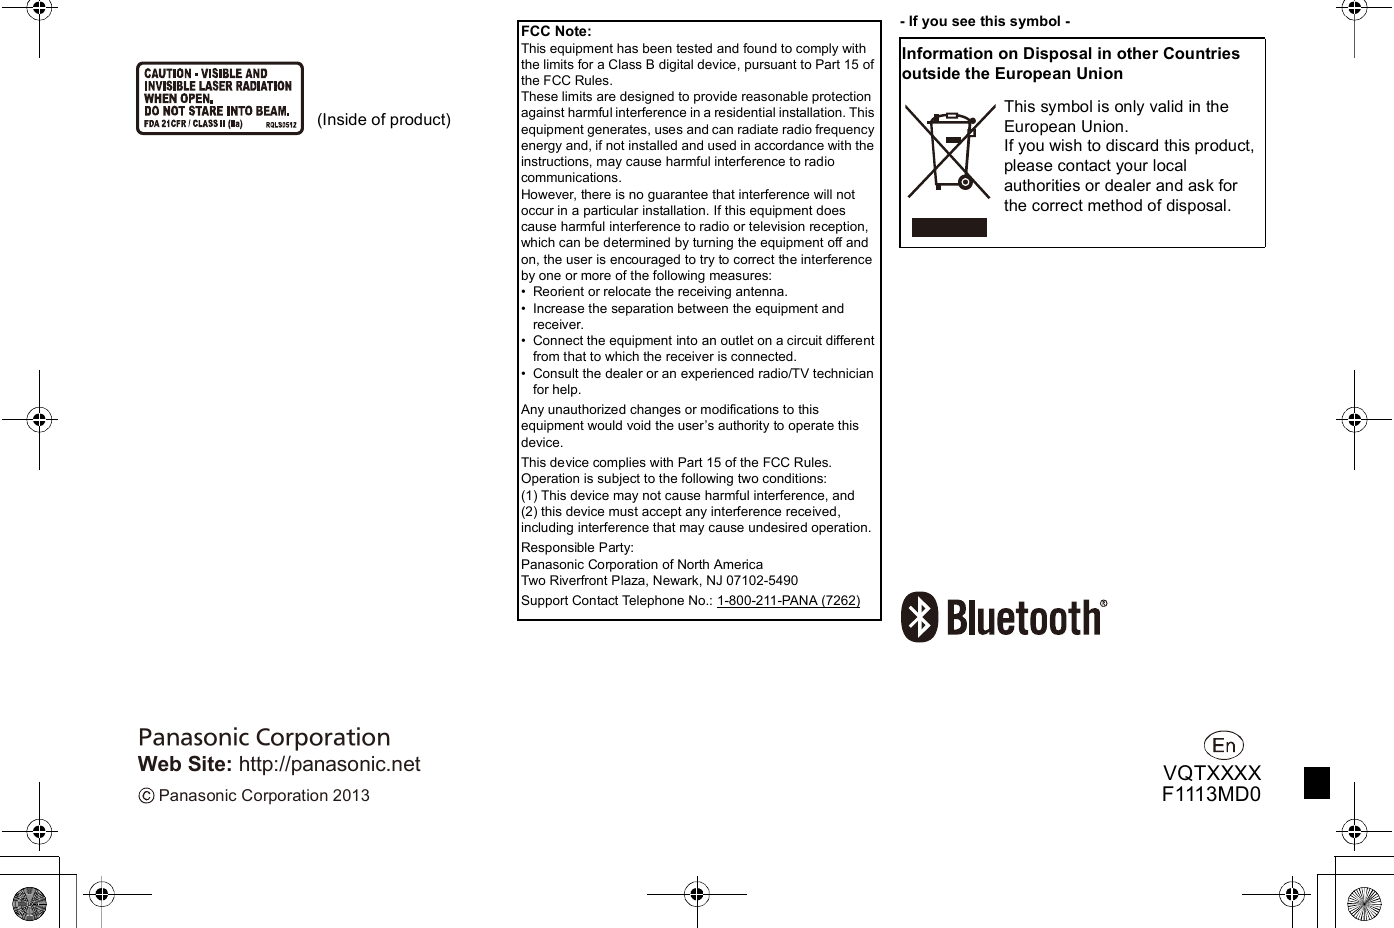 Panasonic of North America B21R1401 Bluetooth Module